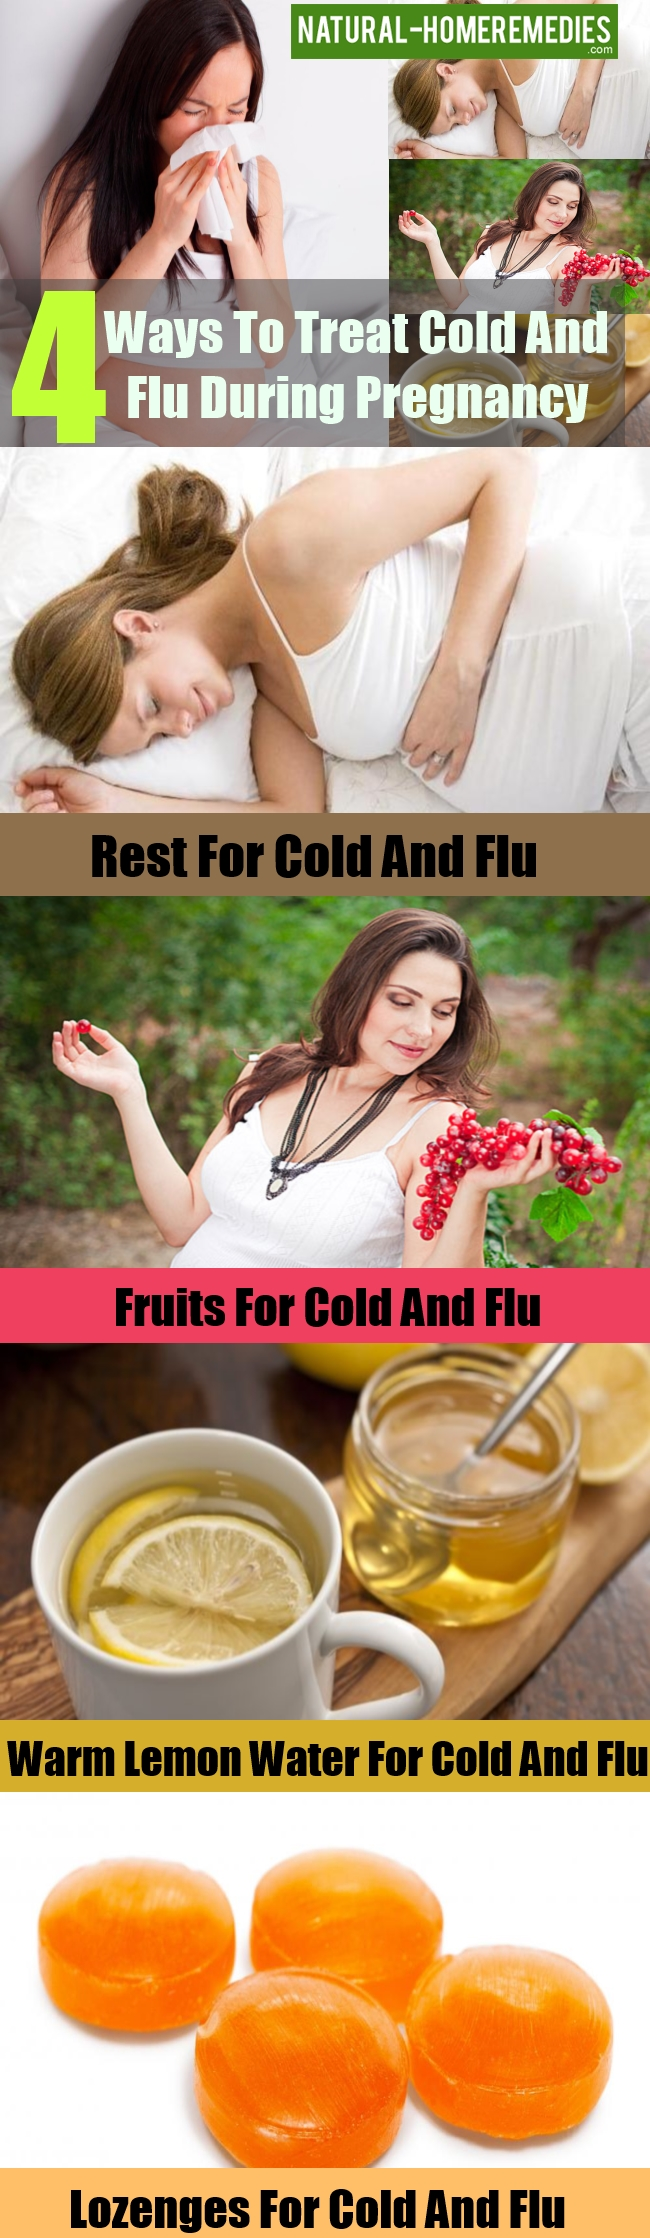 Ways To Treat Cold And Flu During Pregnancy